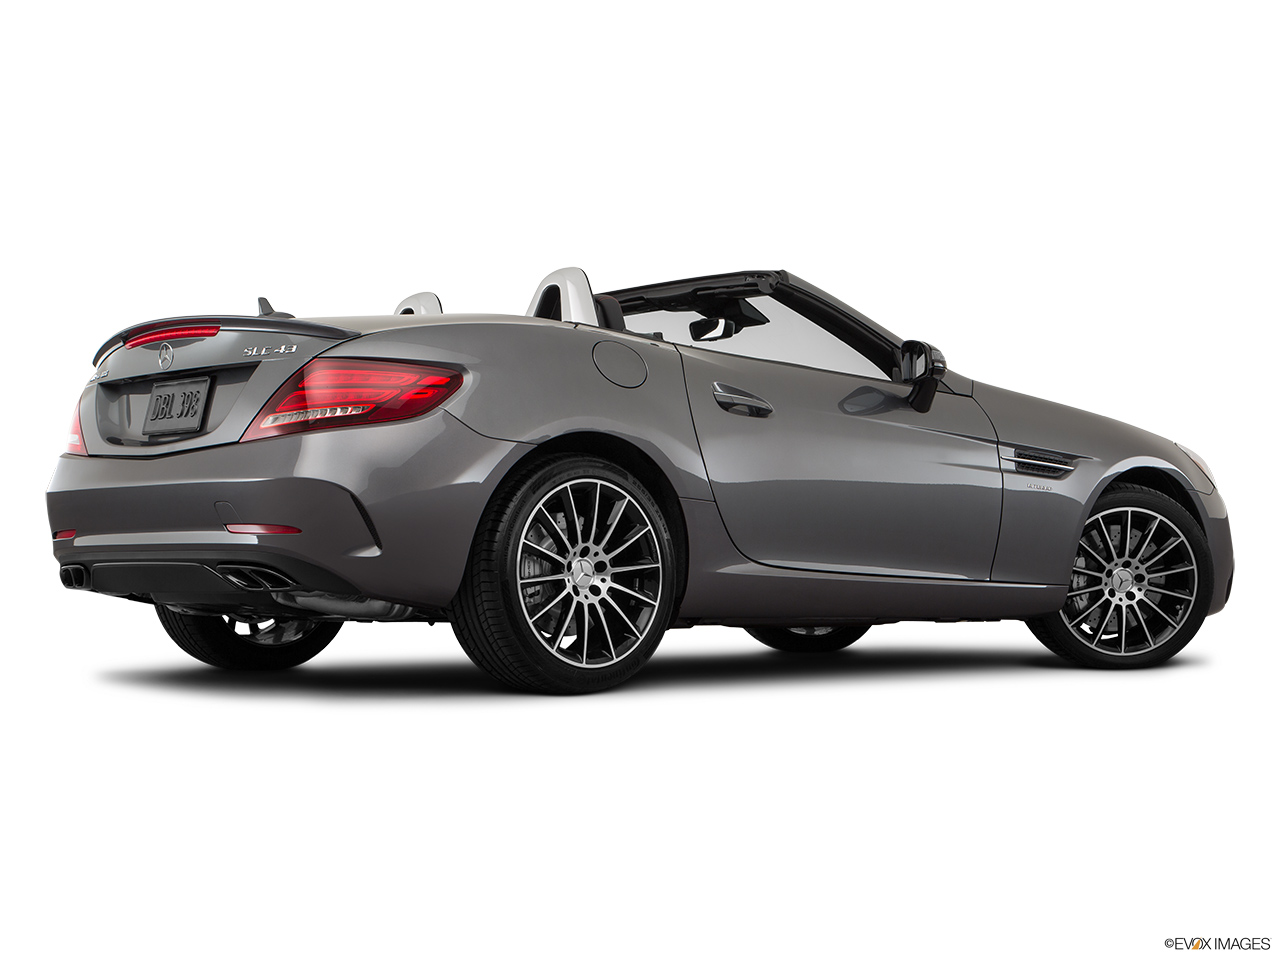 2019 Mercedes-Benz SLC-class SLC43 AMG Low/wide rear 5/8.